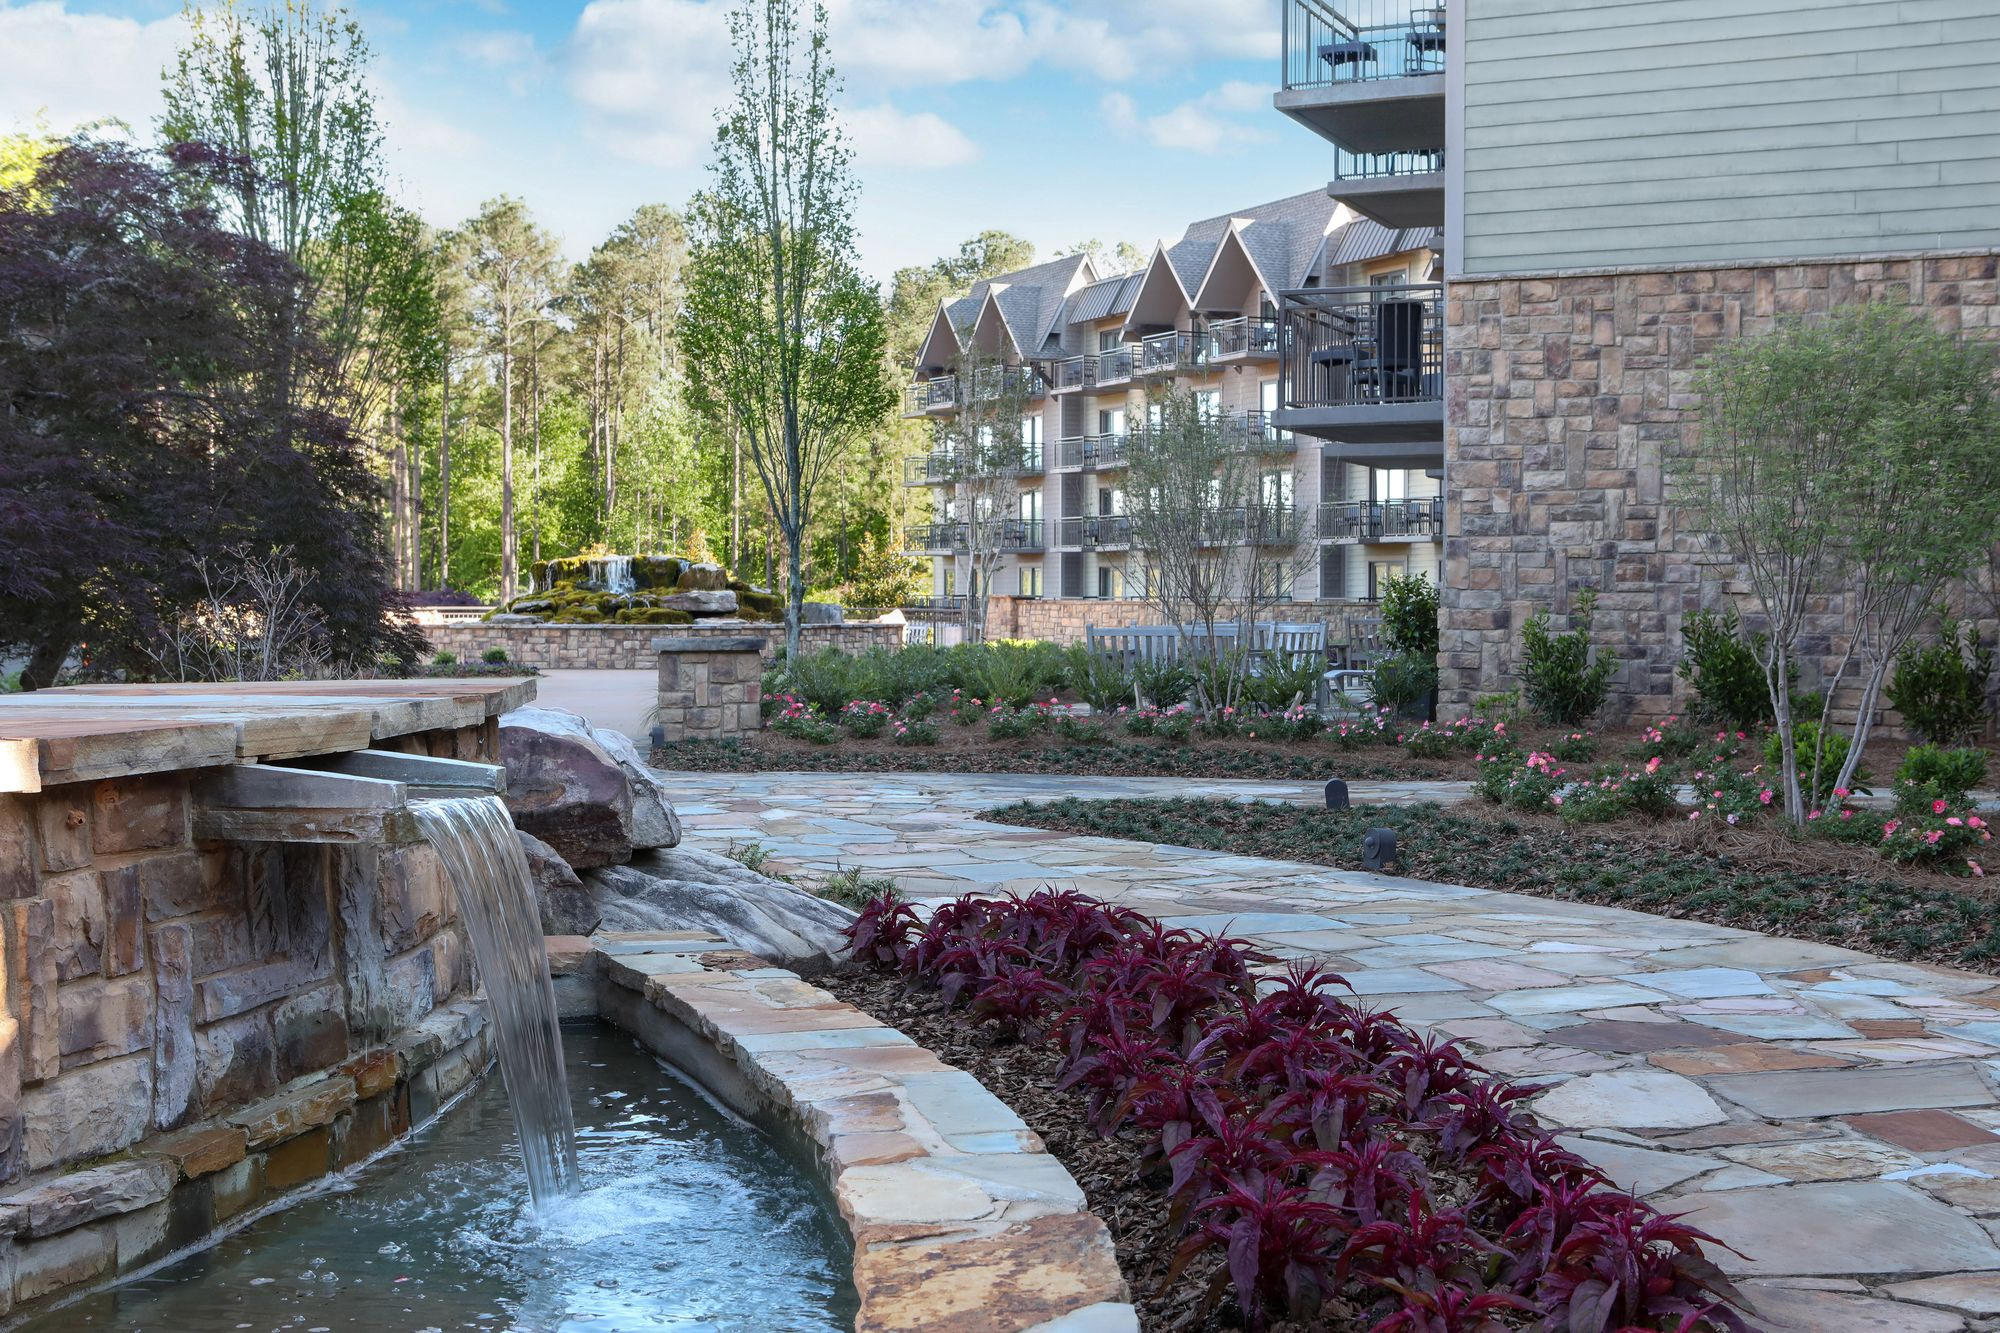 Discount Coupon For The Lodge Spa At Callaway Gardens Autograph Collection In Pine Mountain